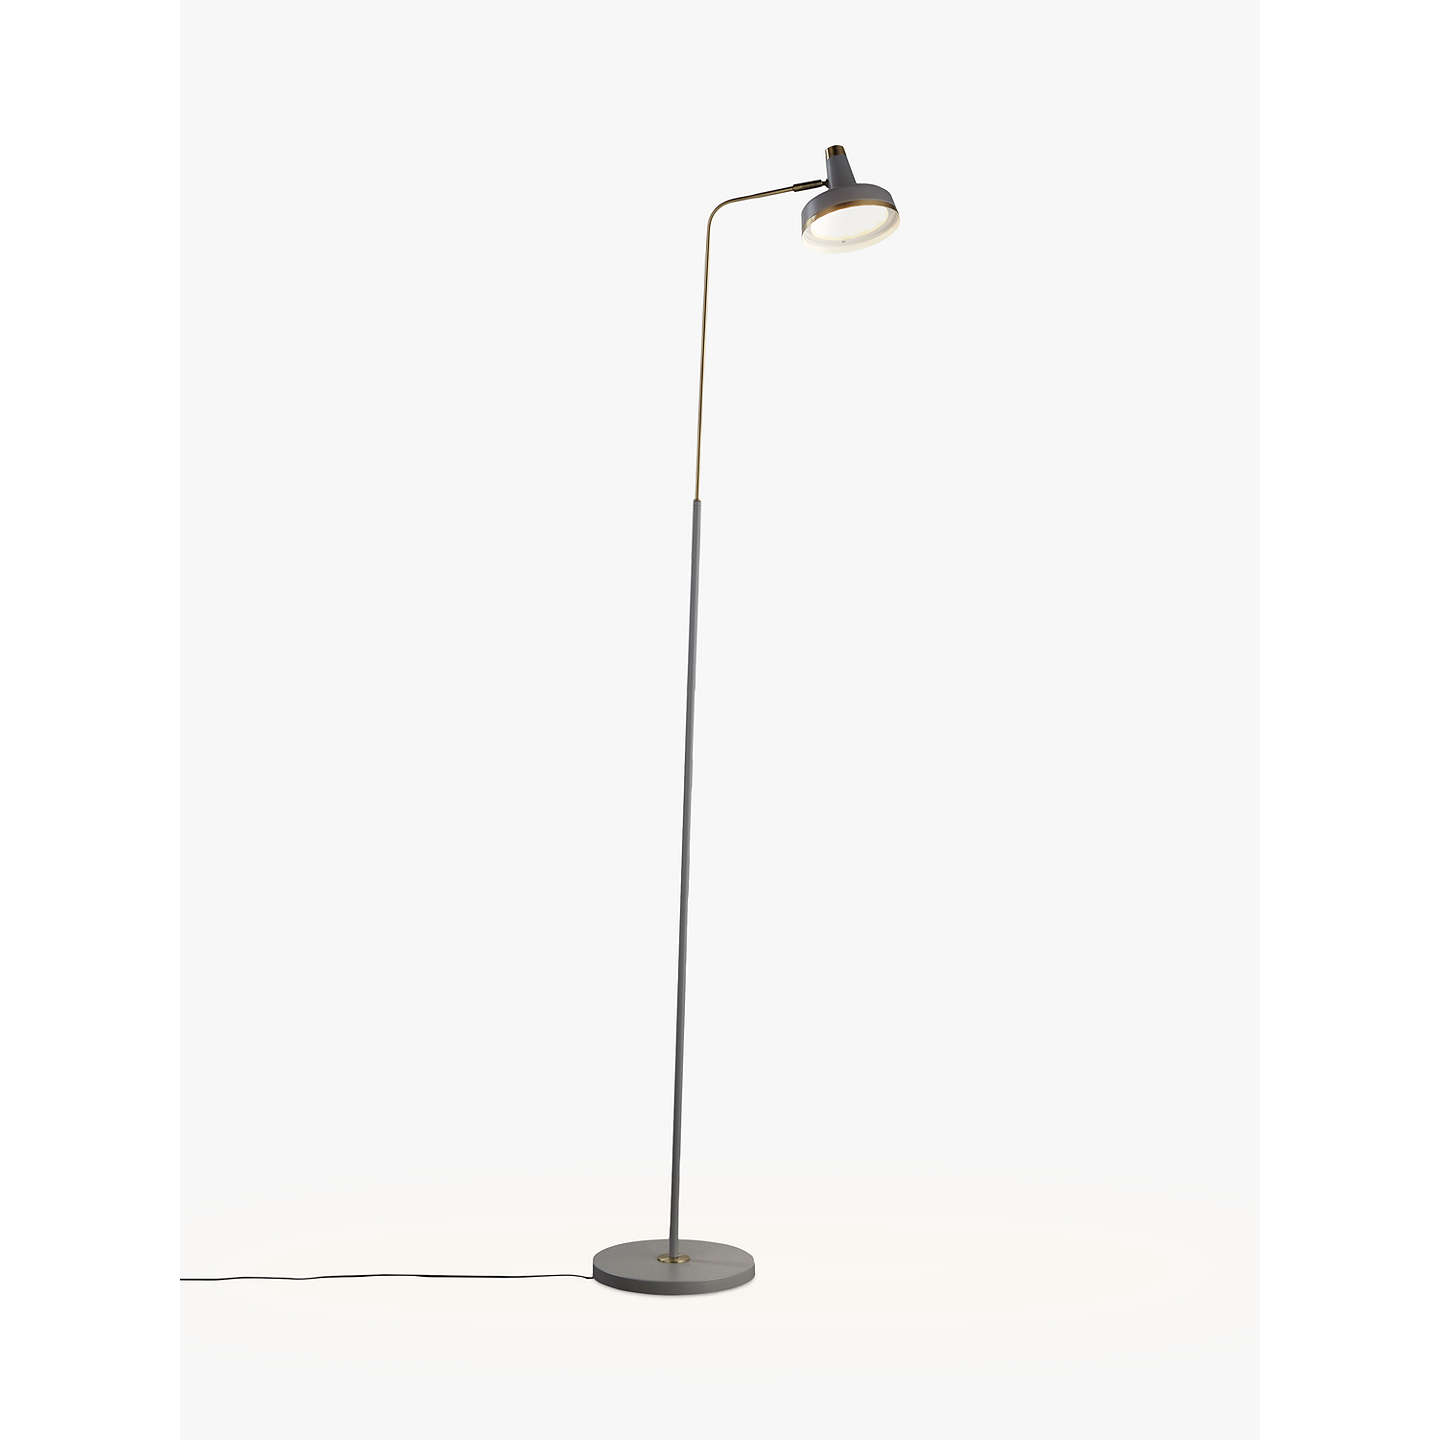 John lewis scott led floor lamp grey brass at john lewis buyjohn lewis scott led floor lamp grey brass online at johnlewis mozeypictures Choice Image